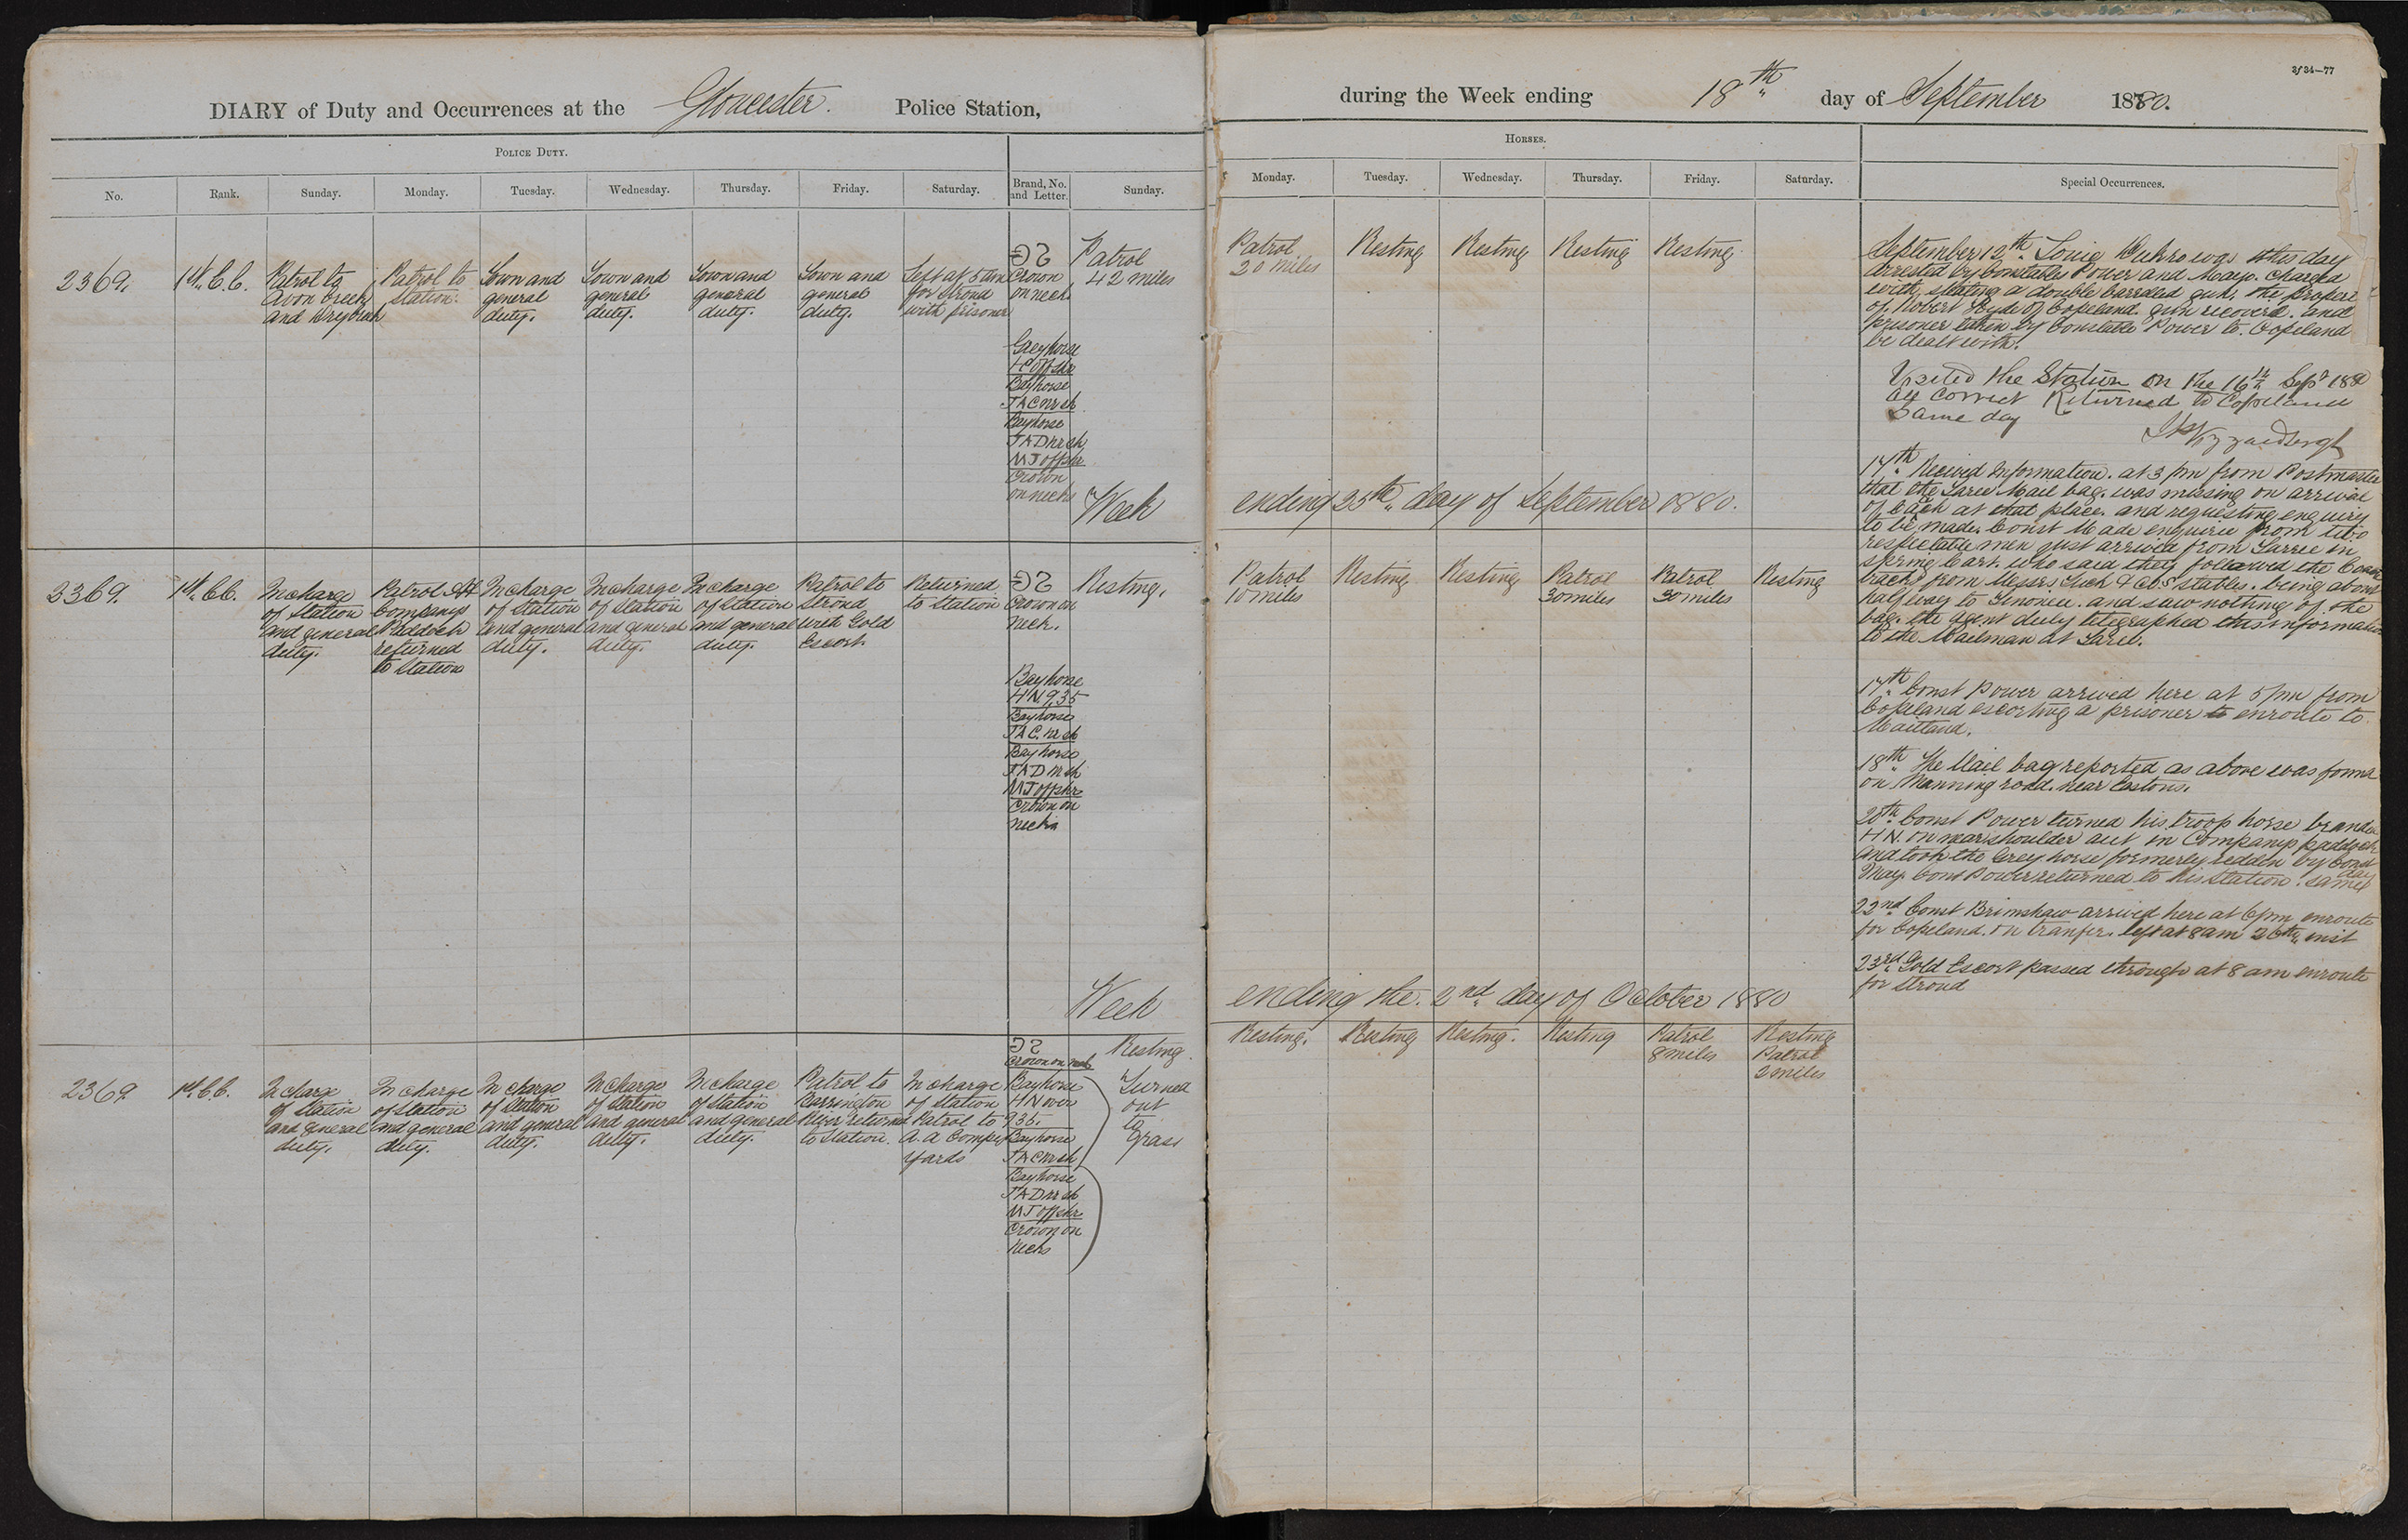 Diary of duty and occurrences at the Gloucester Police Station during the week ending the 18th day of September 1880